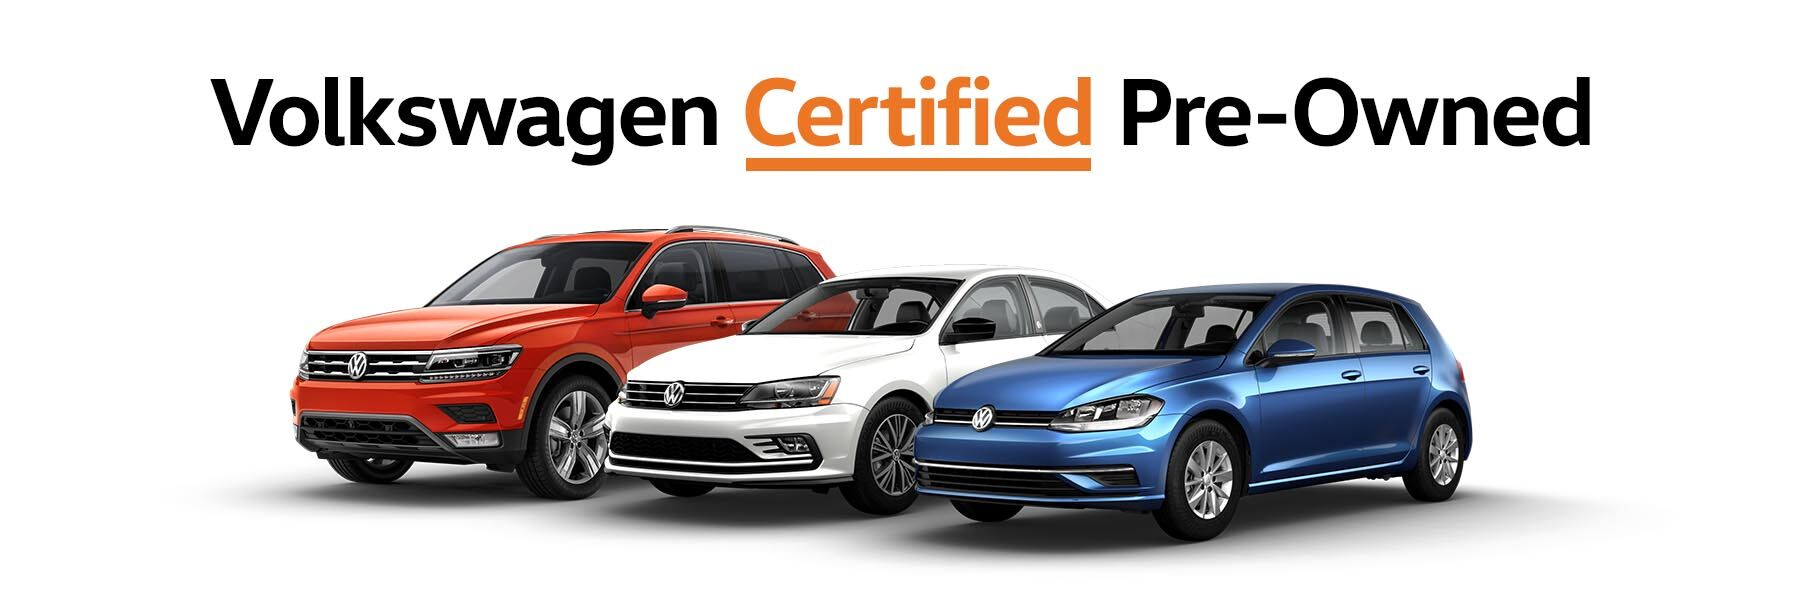 Volkswagen Certified Pre-Owned in Santa Rosa, CA